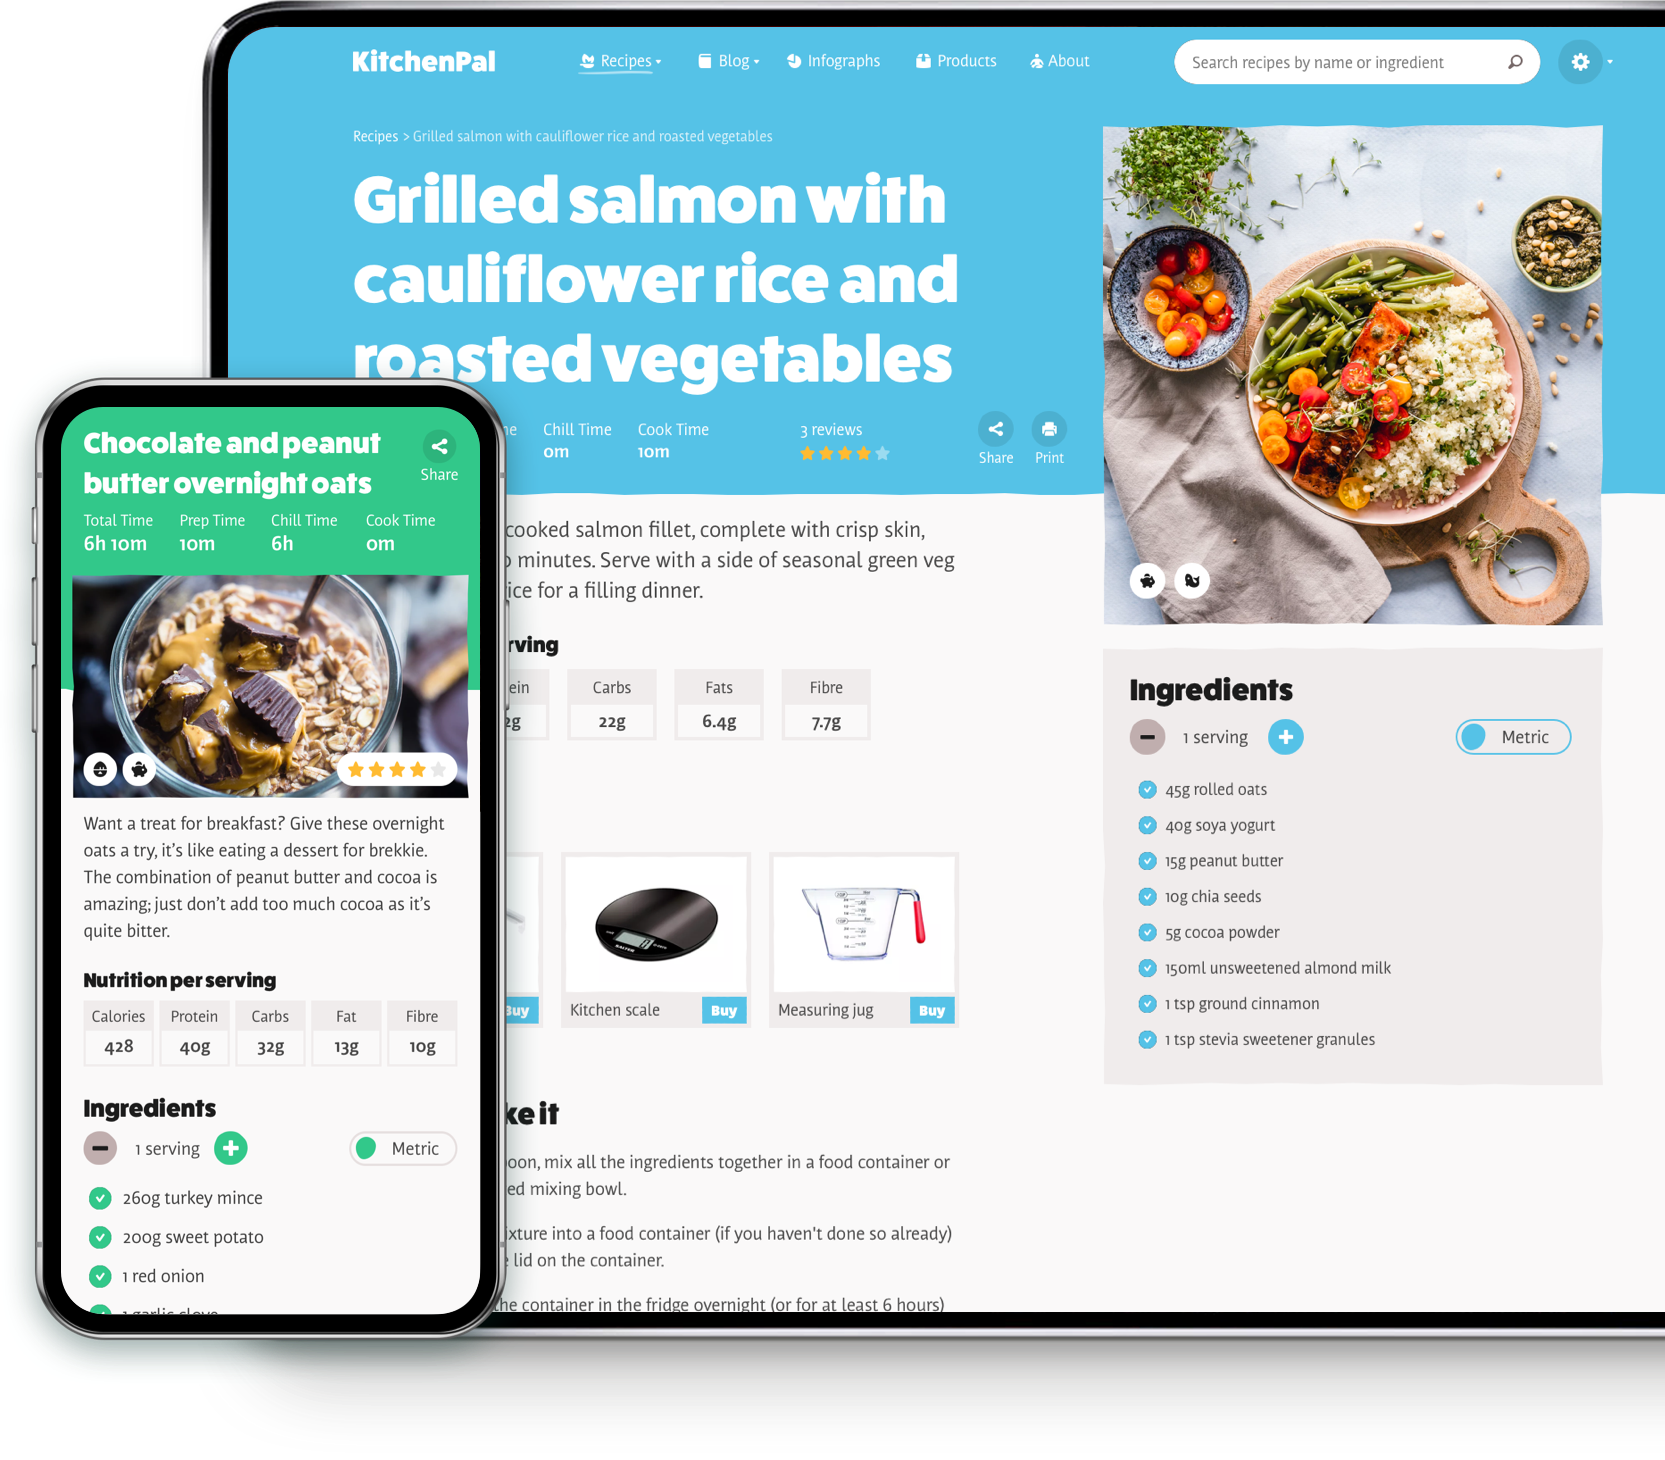 KitchenPal desktop and mobile website design